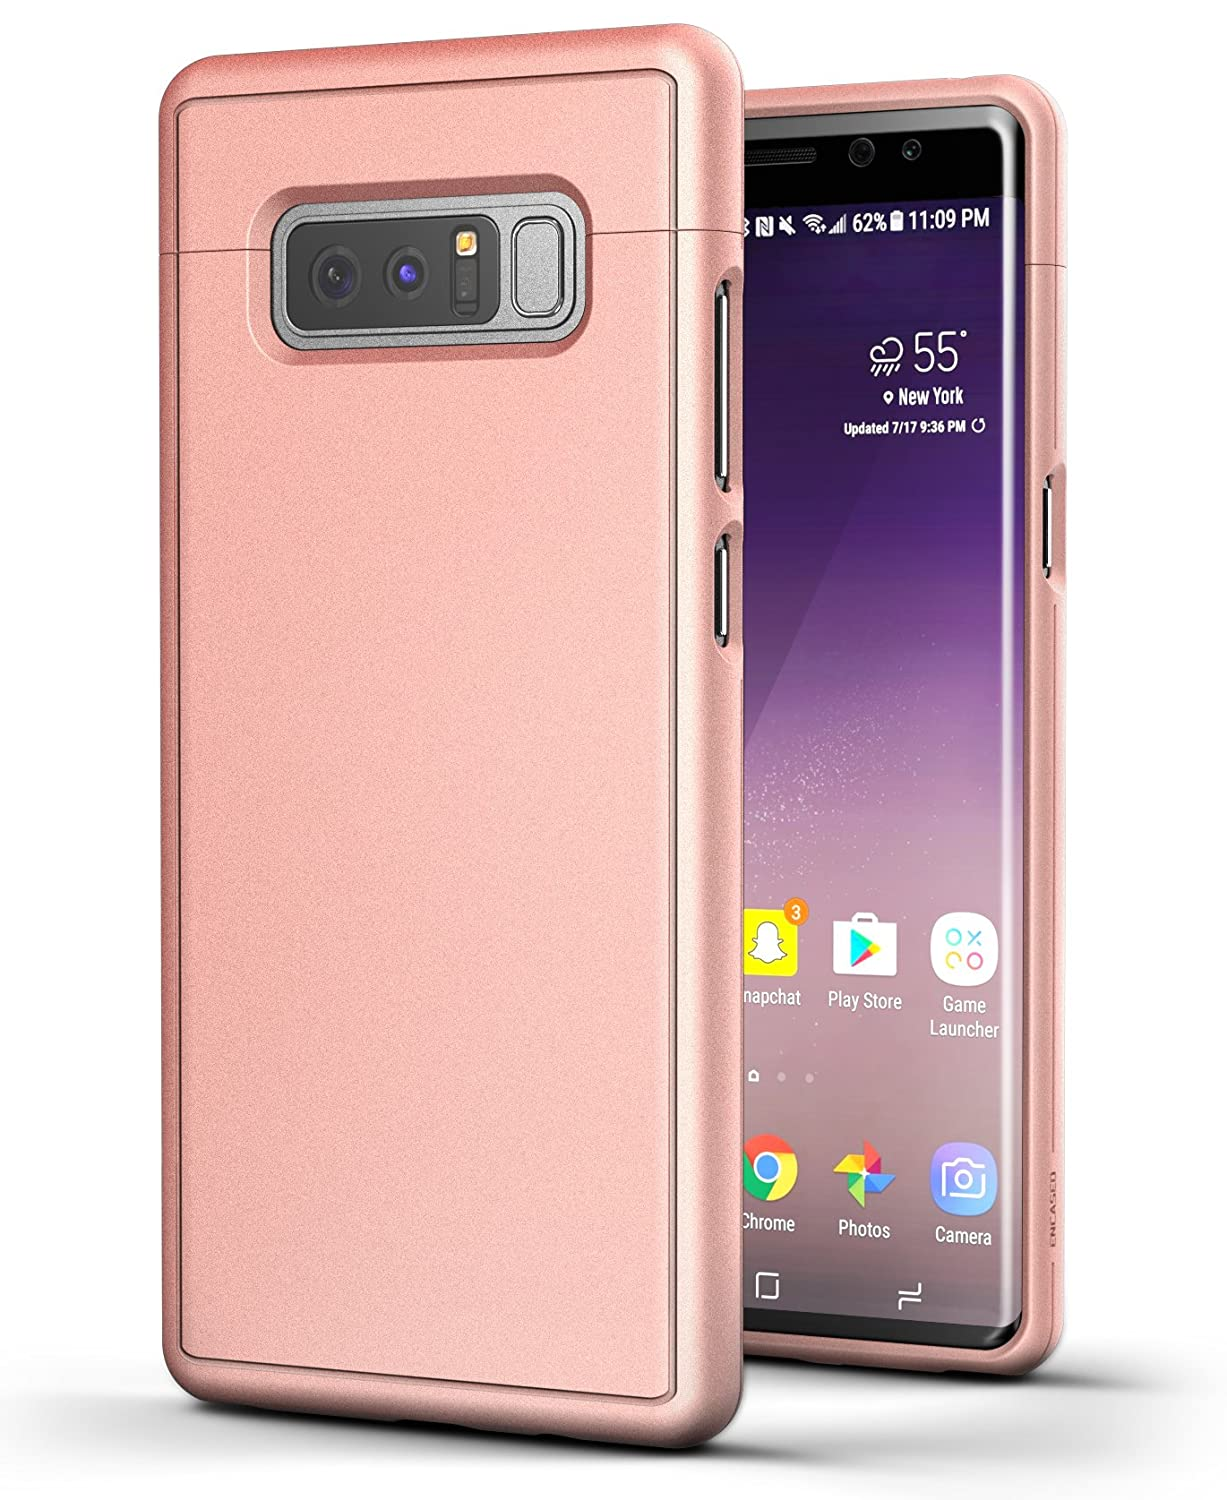 big sale fd930 1a333 Galaxy Note 8 Case Rose Gold - Encased [Slim Shield Edition] Ultra Thin  Protective Grip Phone Case for Samsung Galaxy Note8